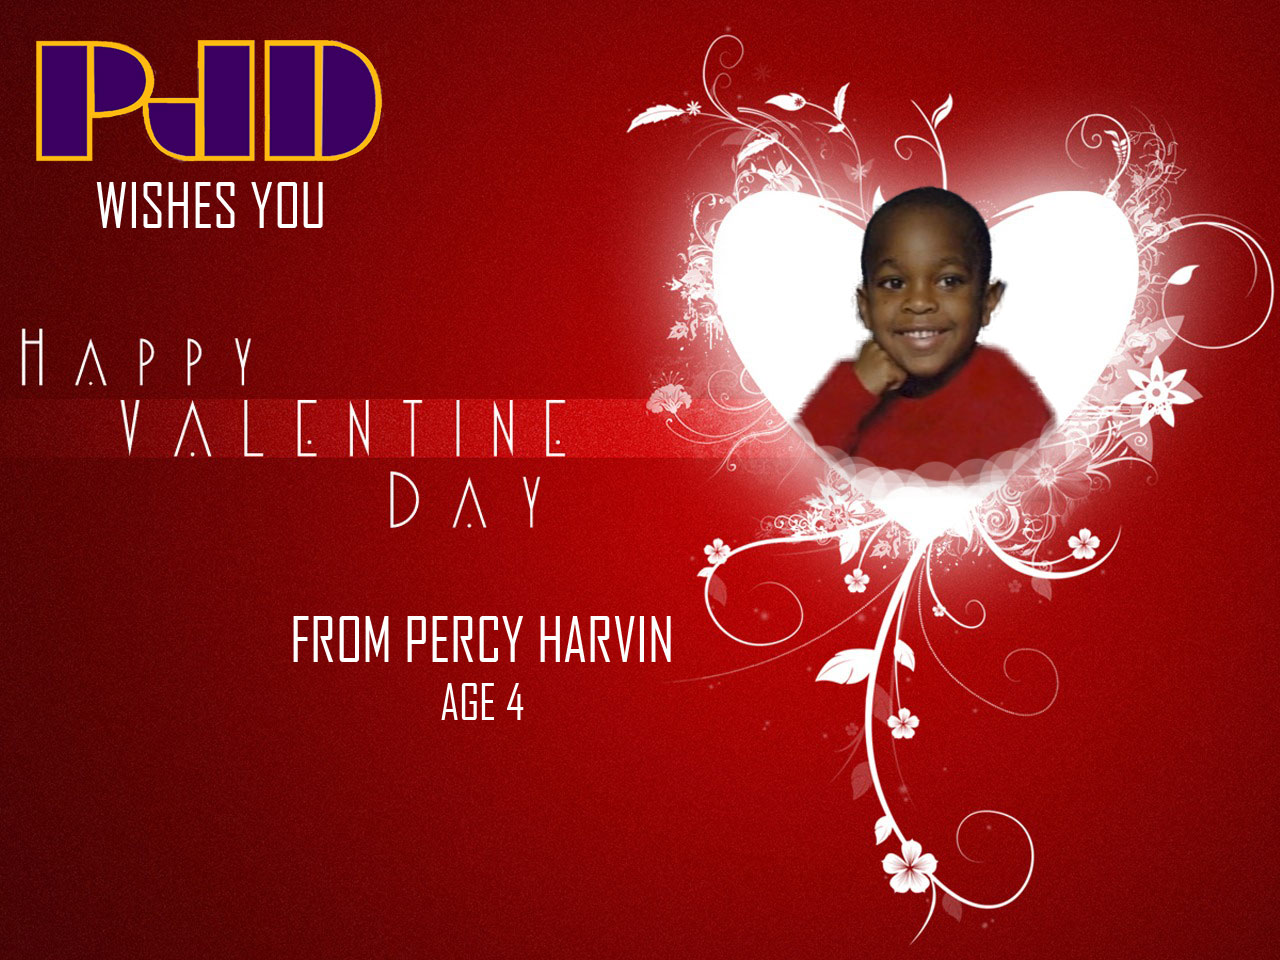 http://purplejesus.files.wordpress.com/2012/02/pjd-valentines-day.jpg